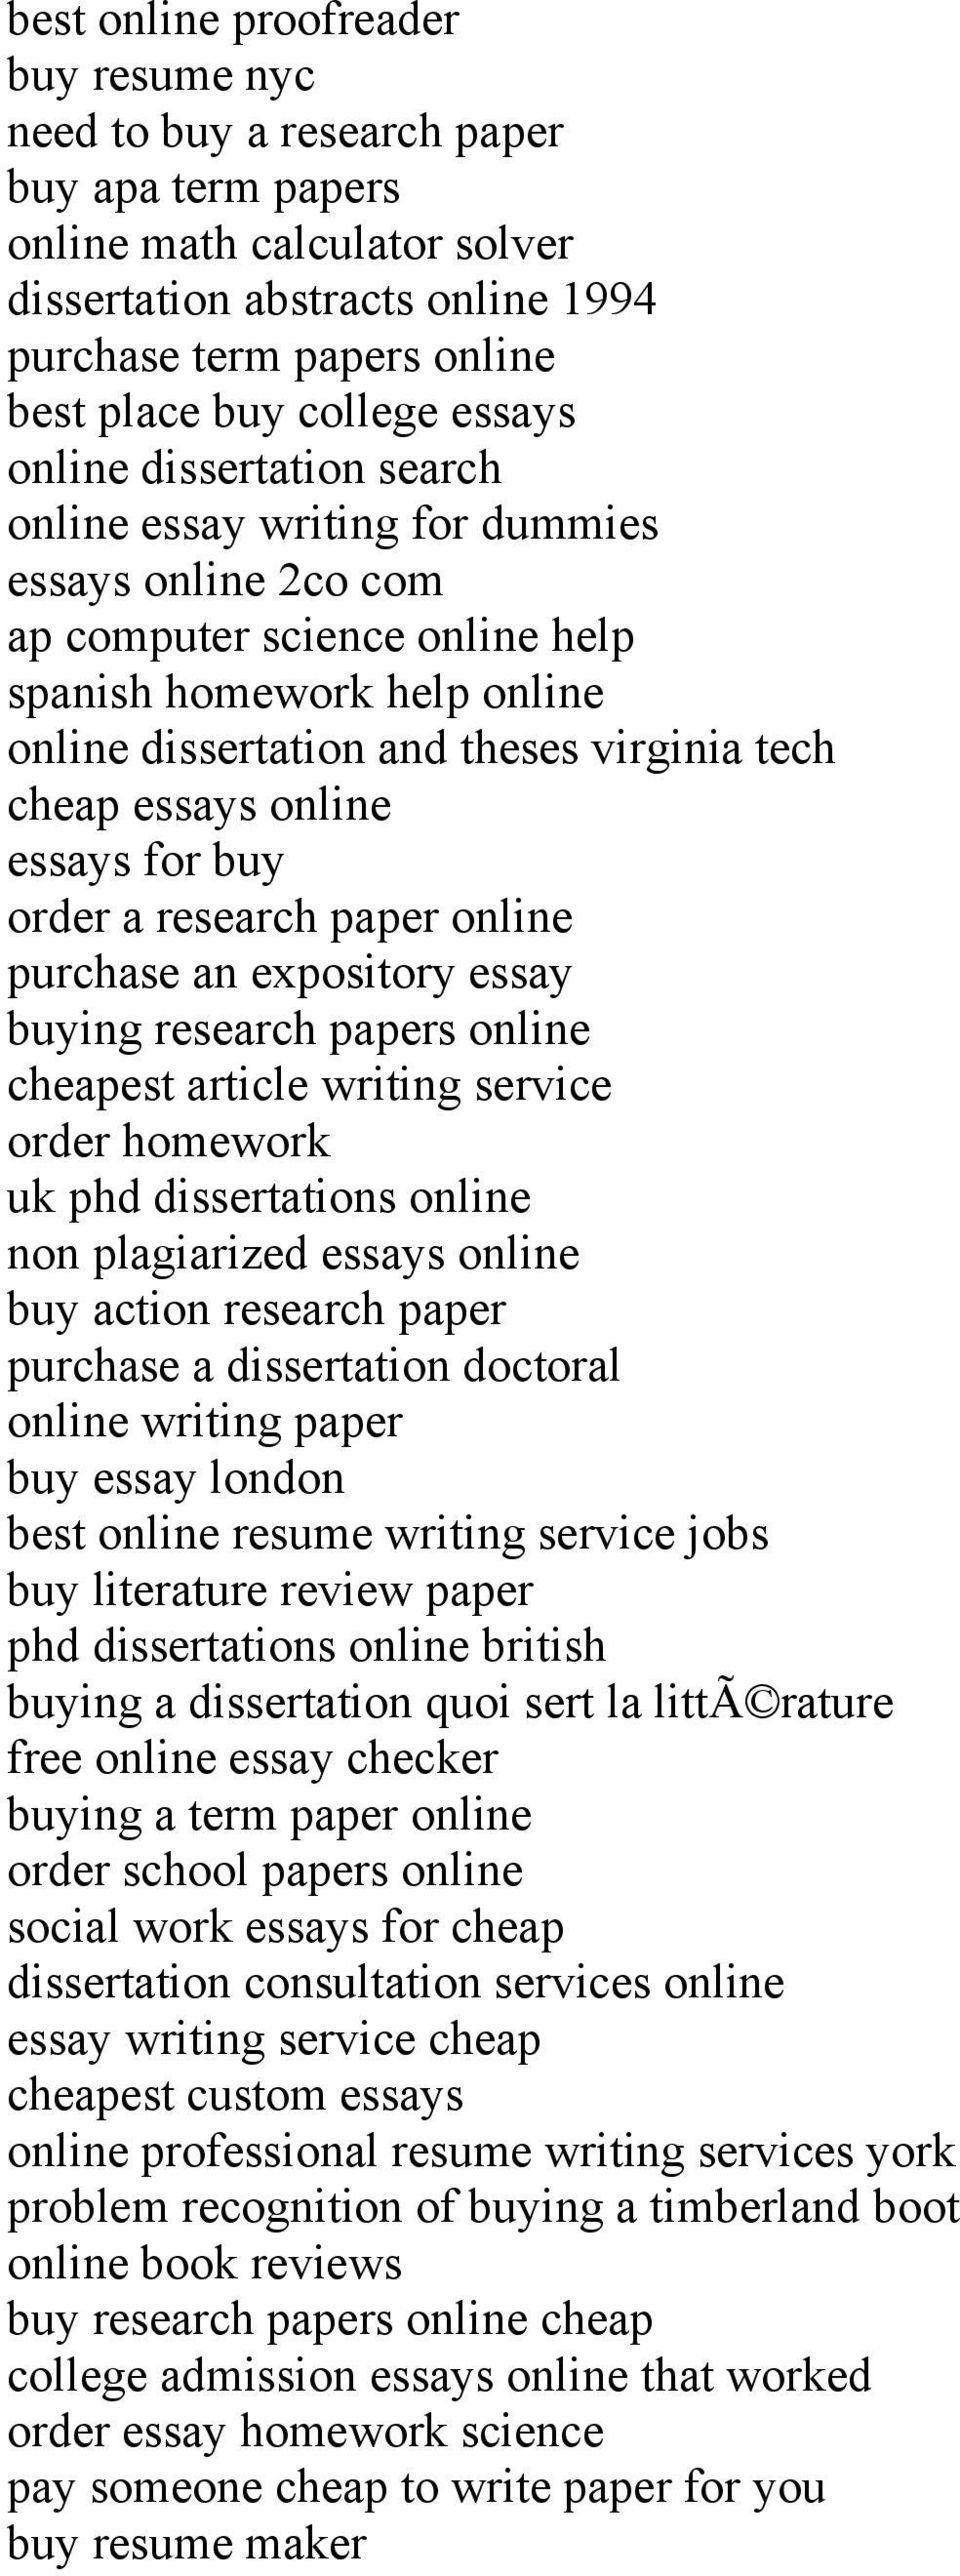 Topics For Proposal Essays Tech Cheap Essays Online Essays For Buy Order A Research Paper Online  Purchase An Expository Essay University English Essay also English Literature Essay Questions Help Write Essay Online  Pdf Mahatma Gandhi Essay In English